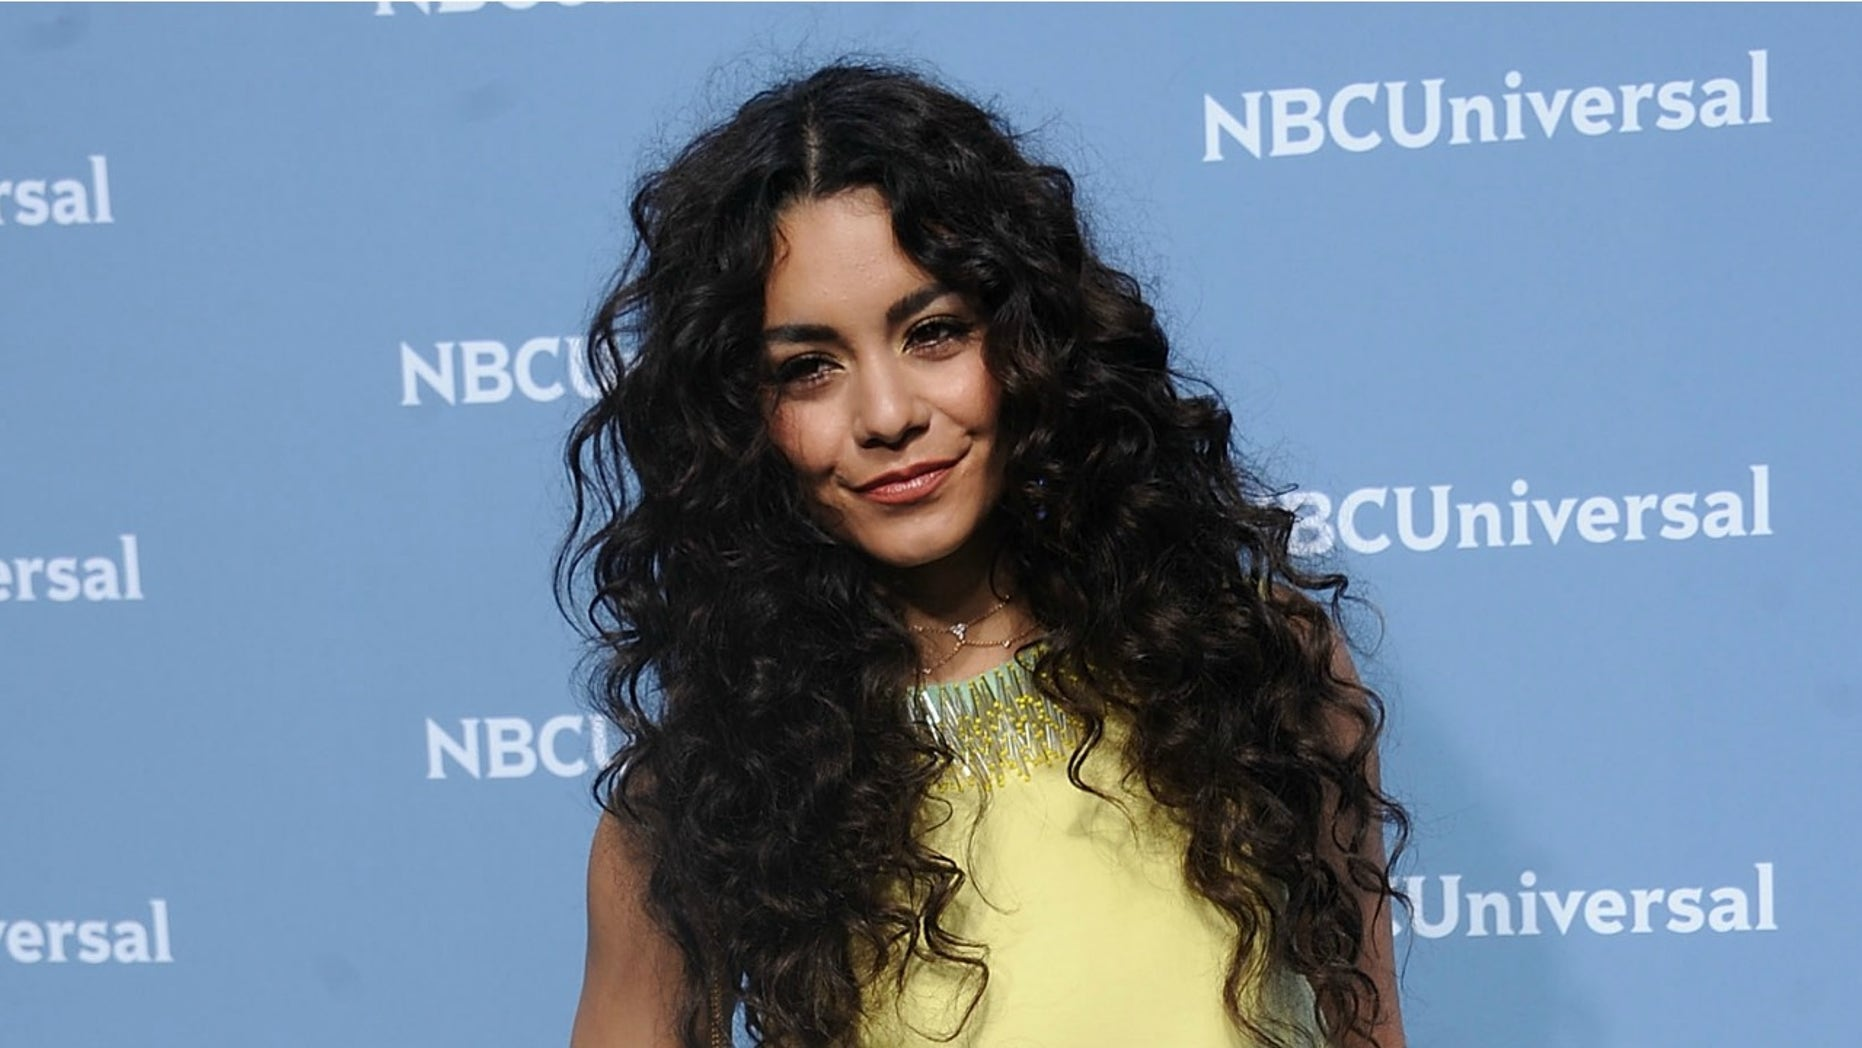 NEW YORK, NY - MAY 16:  Vanessa Hudgens attends the NBCUniversal 2016 Upfront Presentation on May 16, 2016 in New York City.  (Photo by Brad Barket/Getty Images)